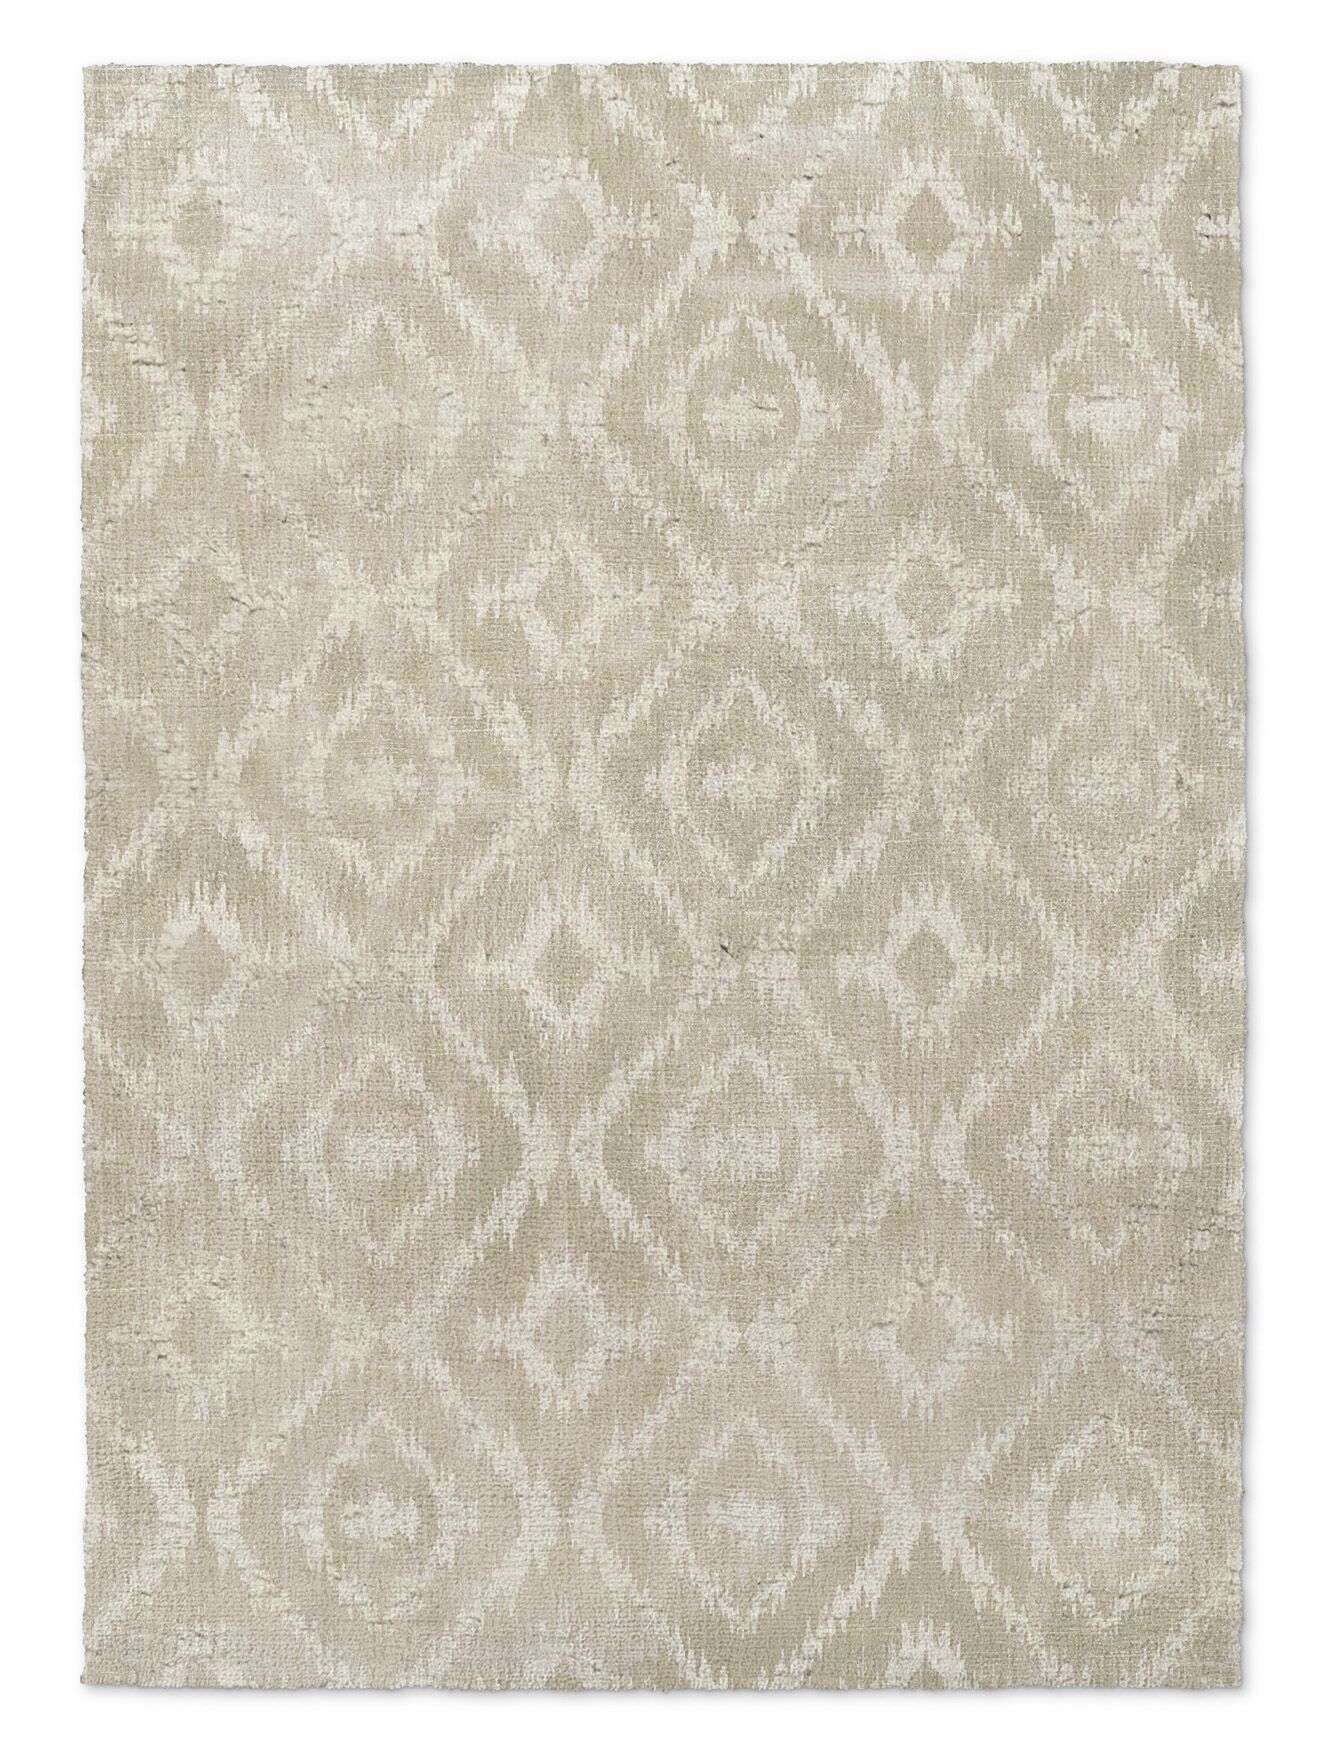 Laplant Ivory Area Rug Rug Size: Rectangle 8' x 10'